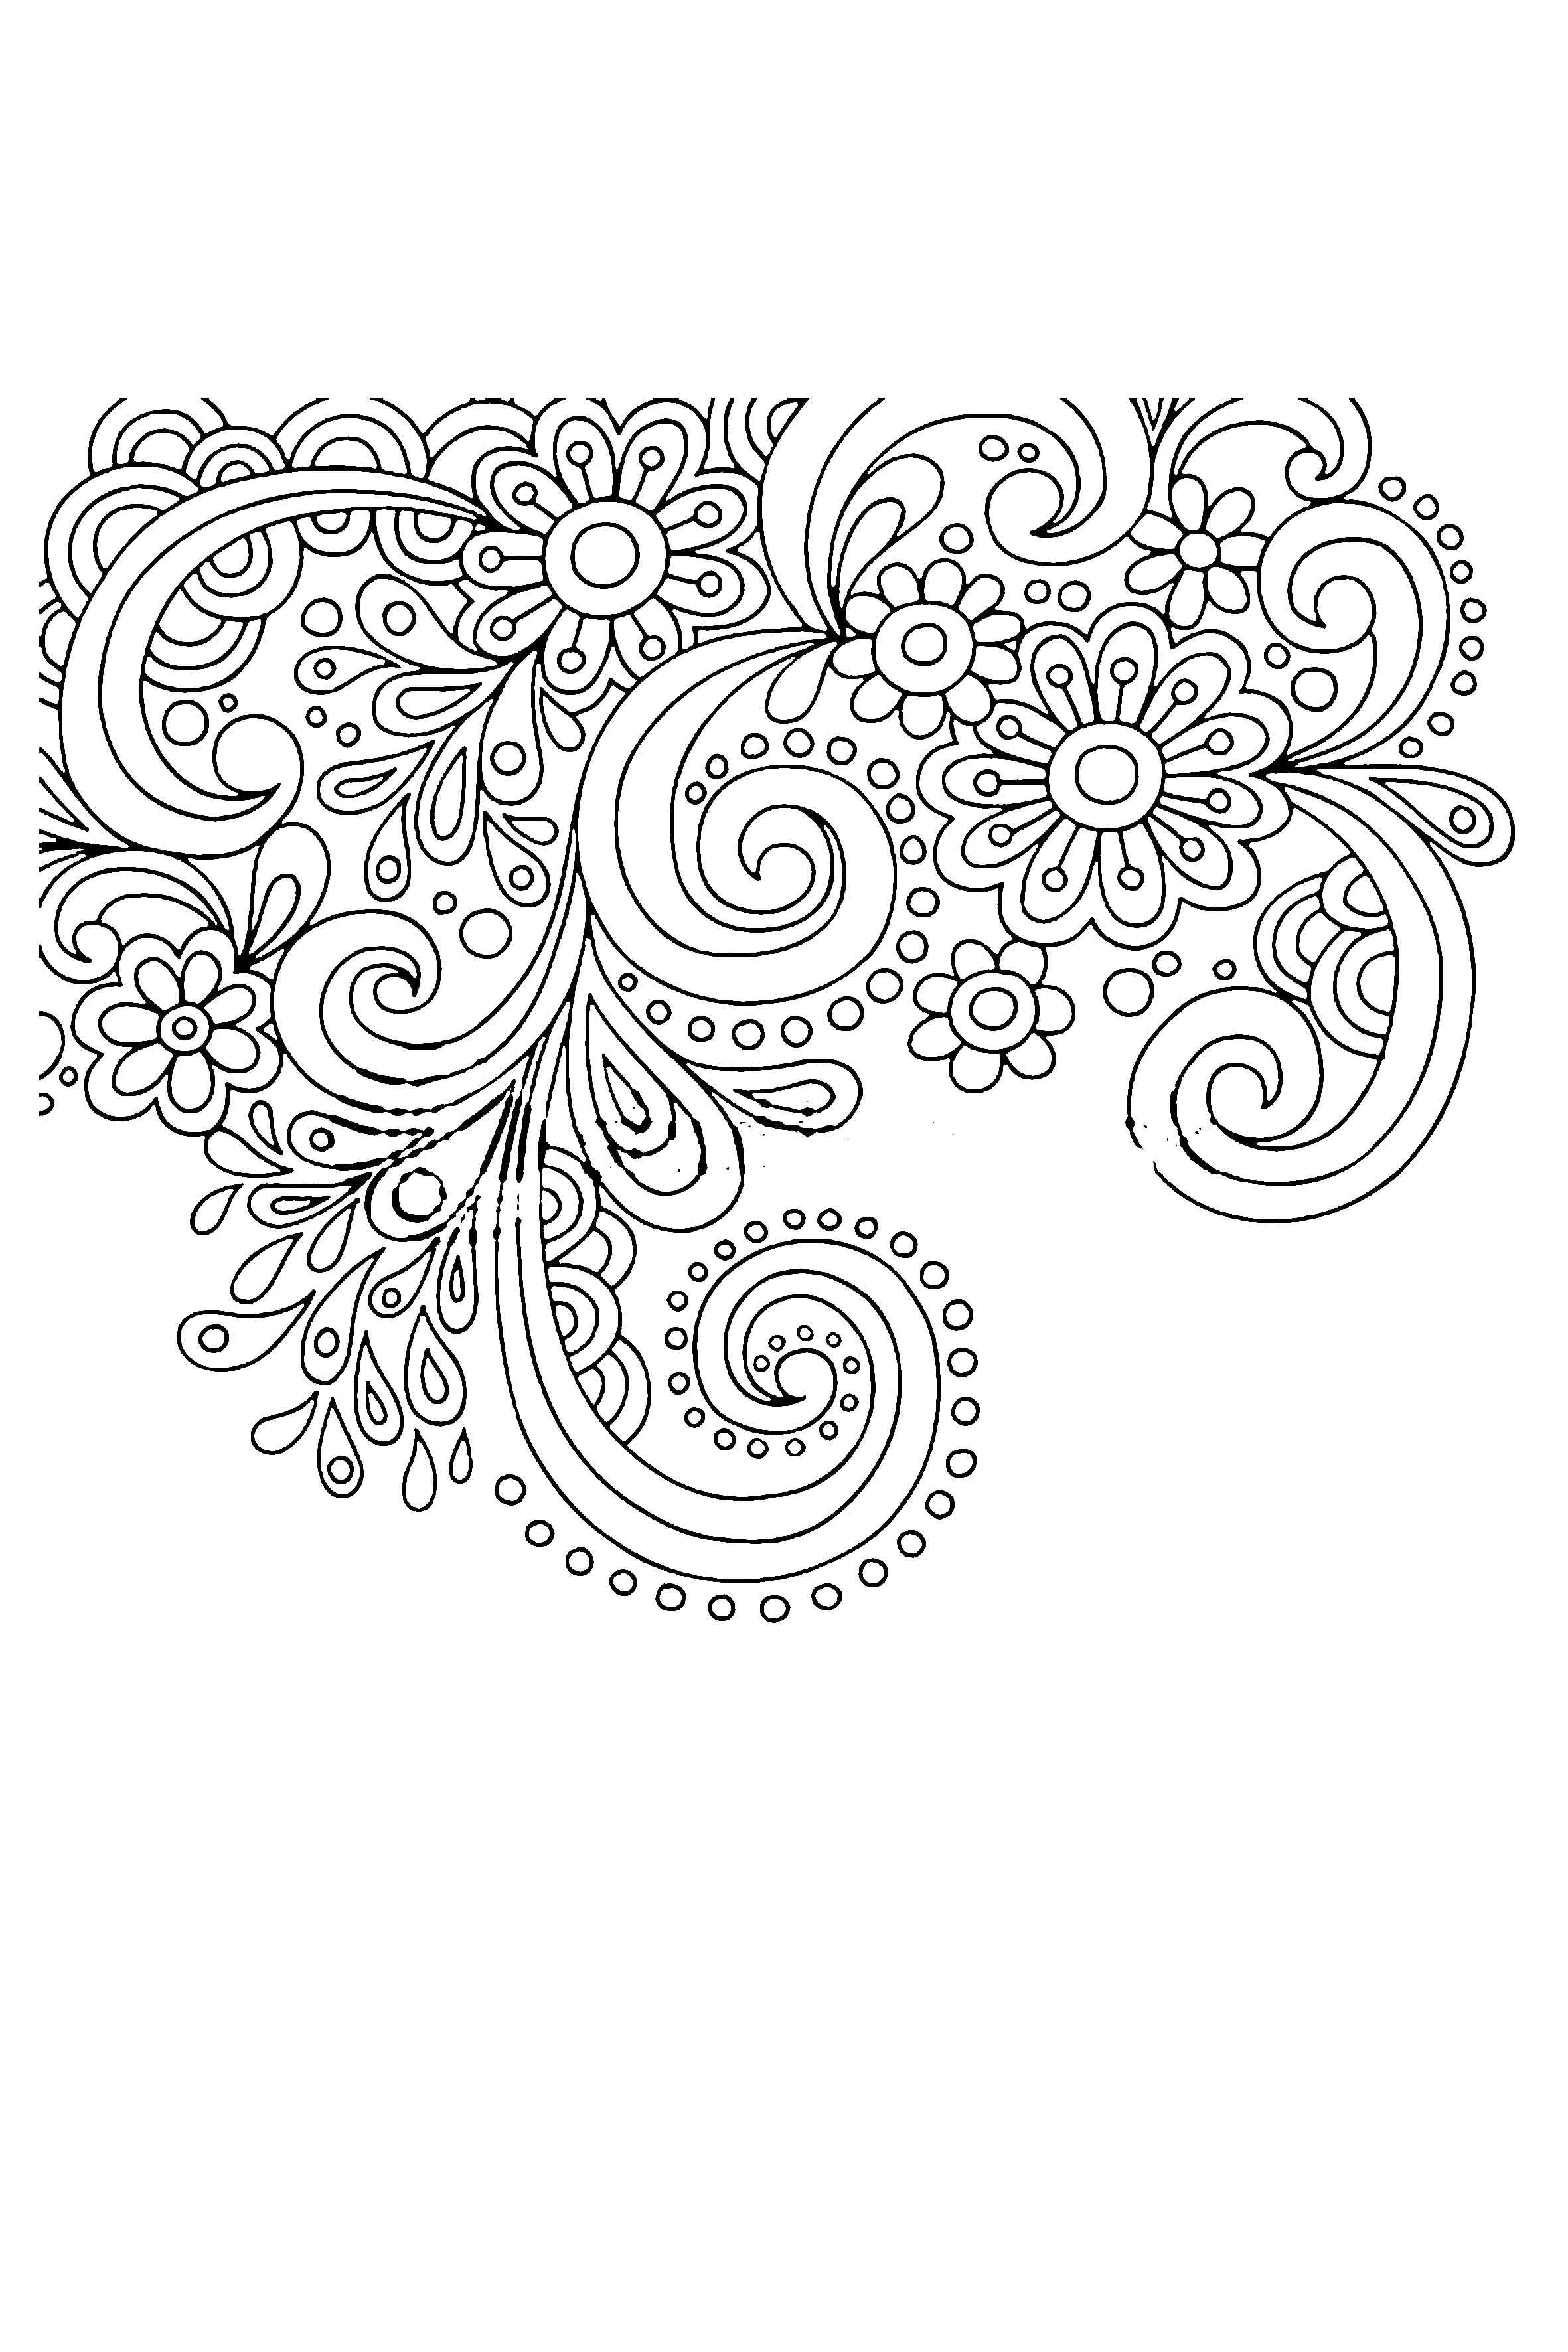 Henna designs on paper google search henna pinterest for Cute designs for paper